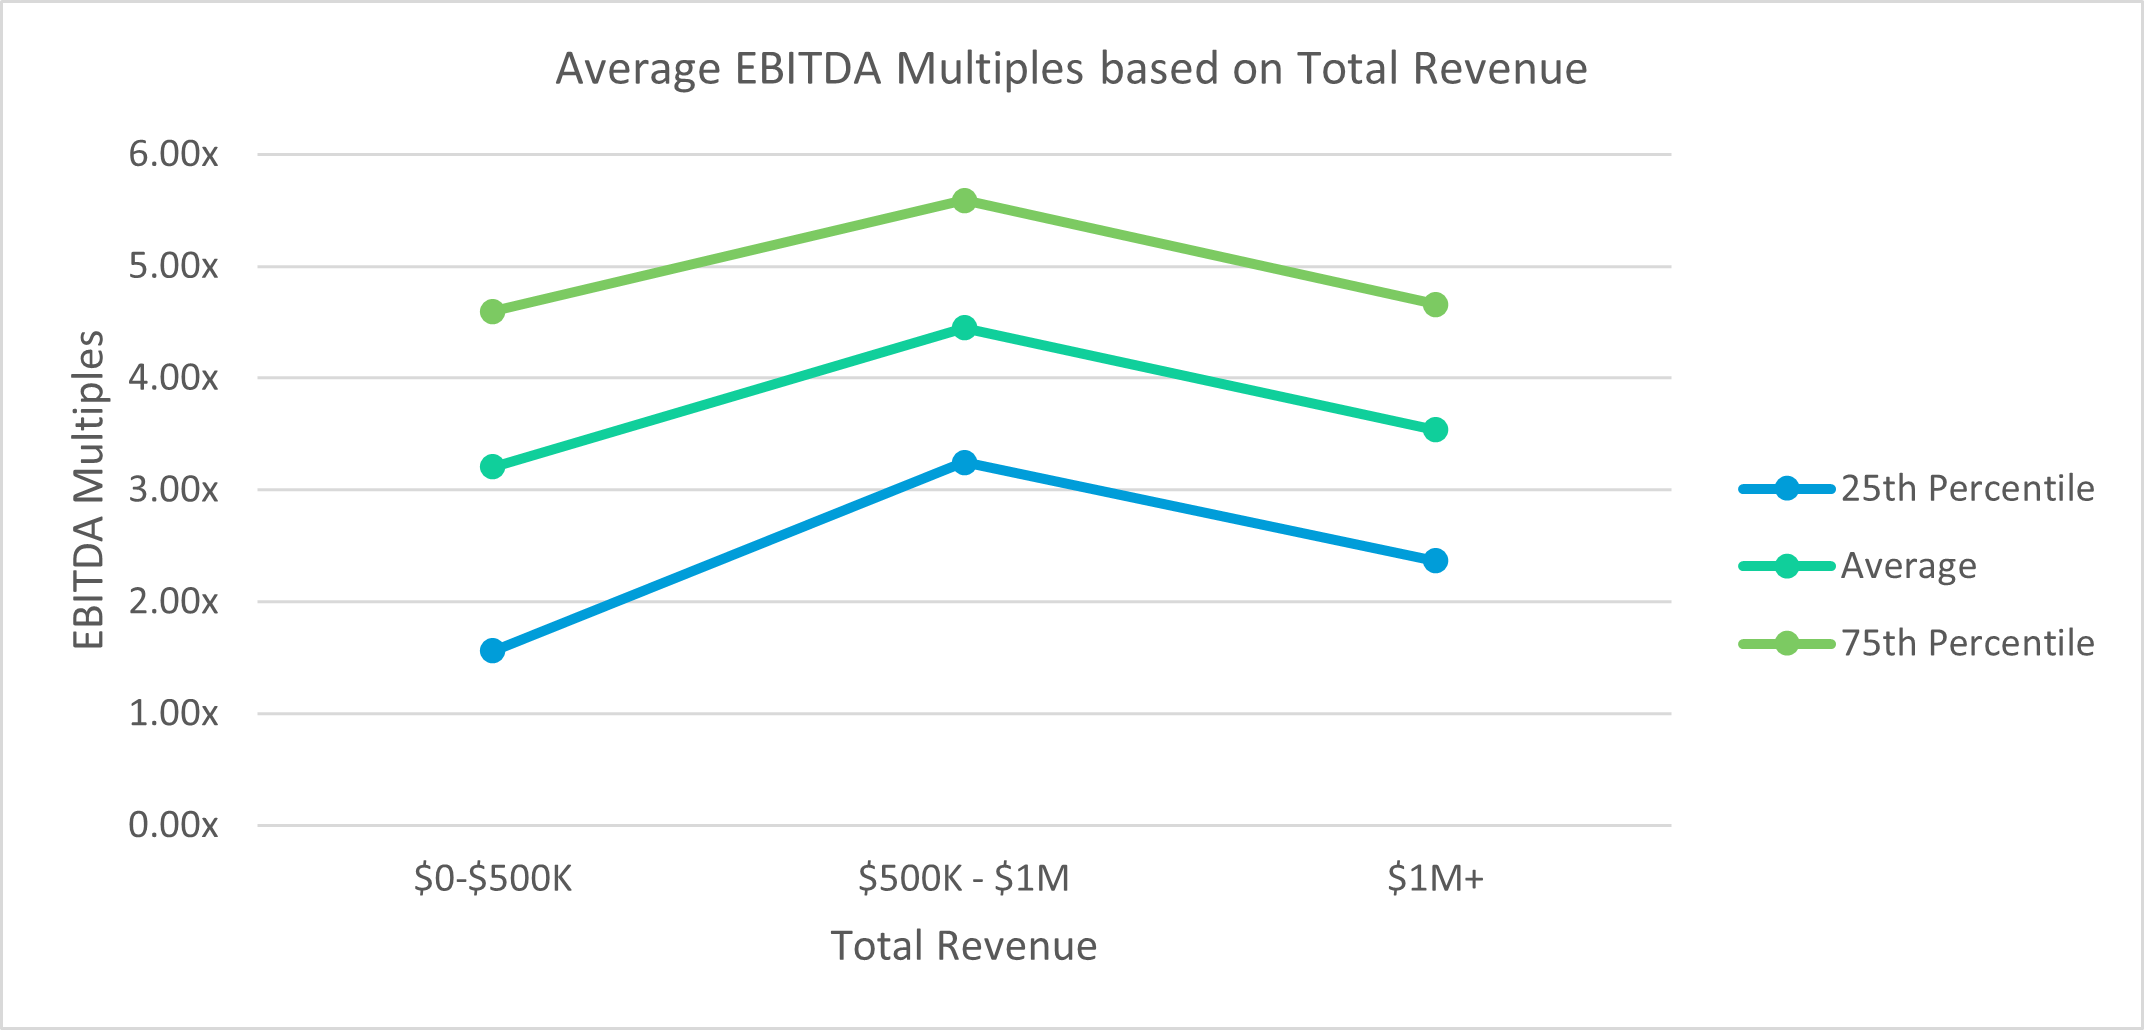 Physical Therapy EBITDA Multiples By Revenue